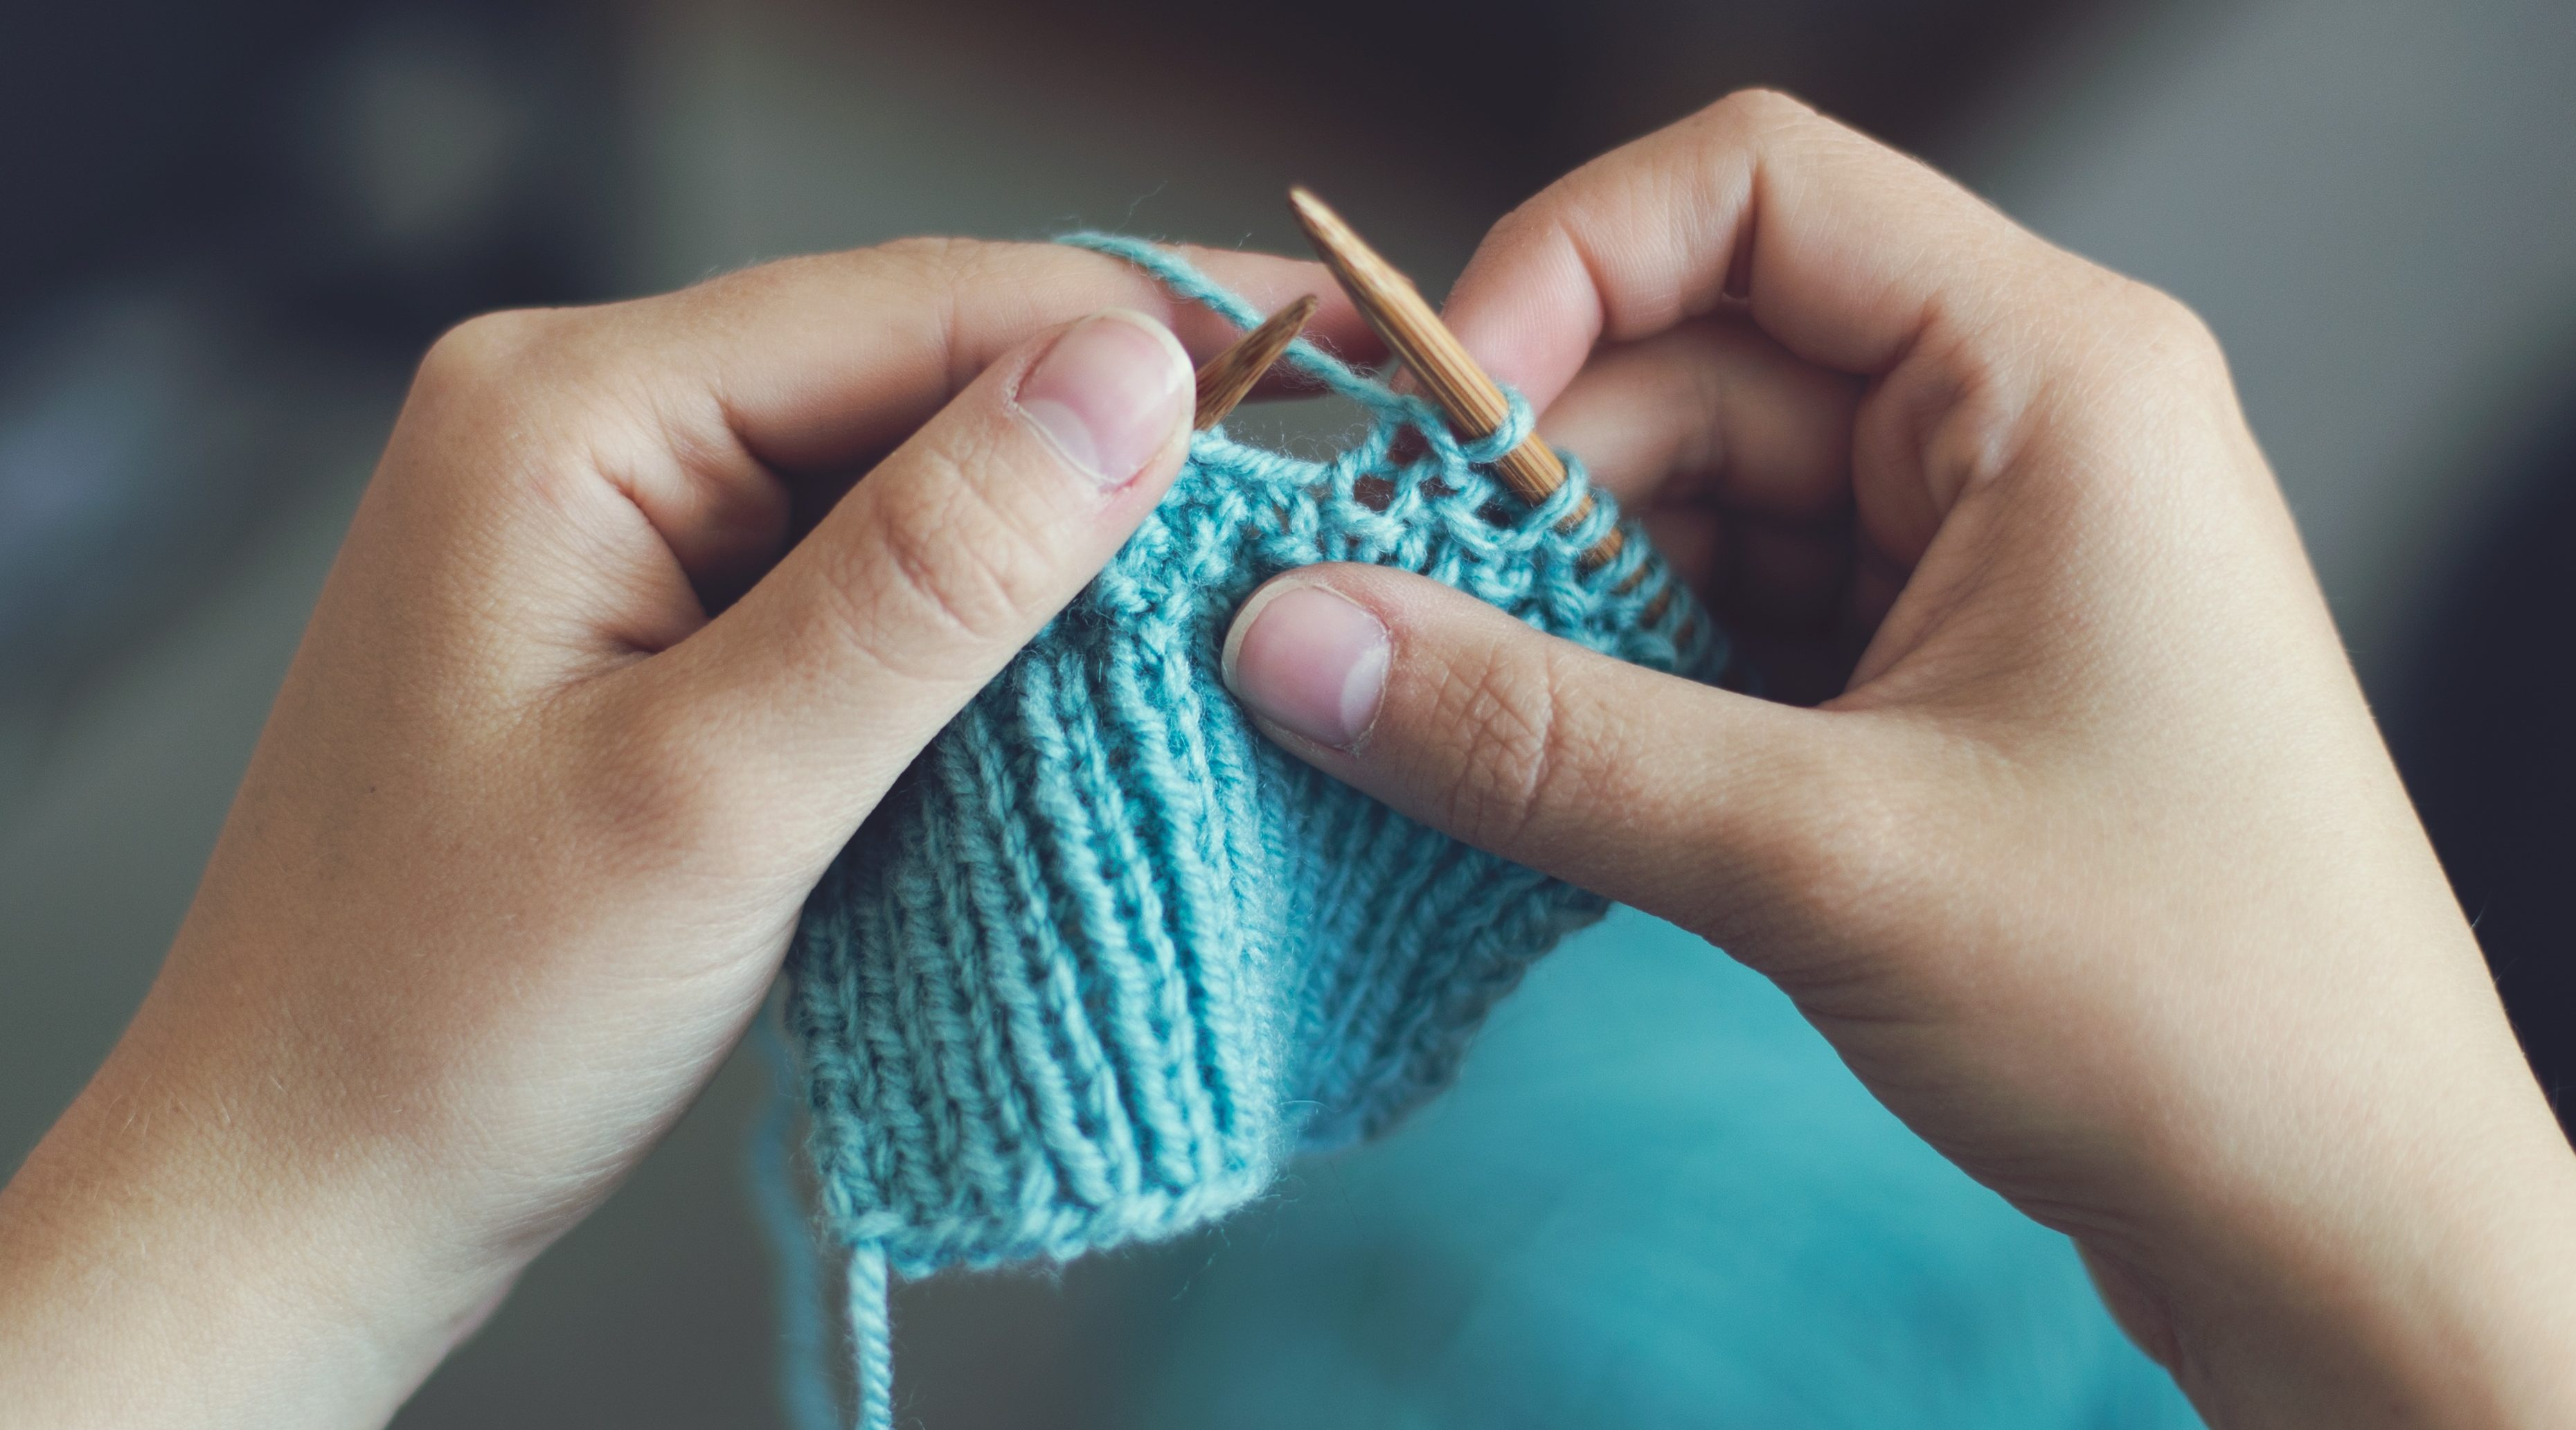 9 reasons why you should be a knitter: #1 It's relaxing and healthy!